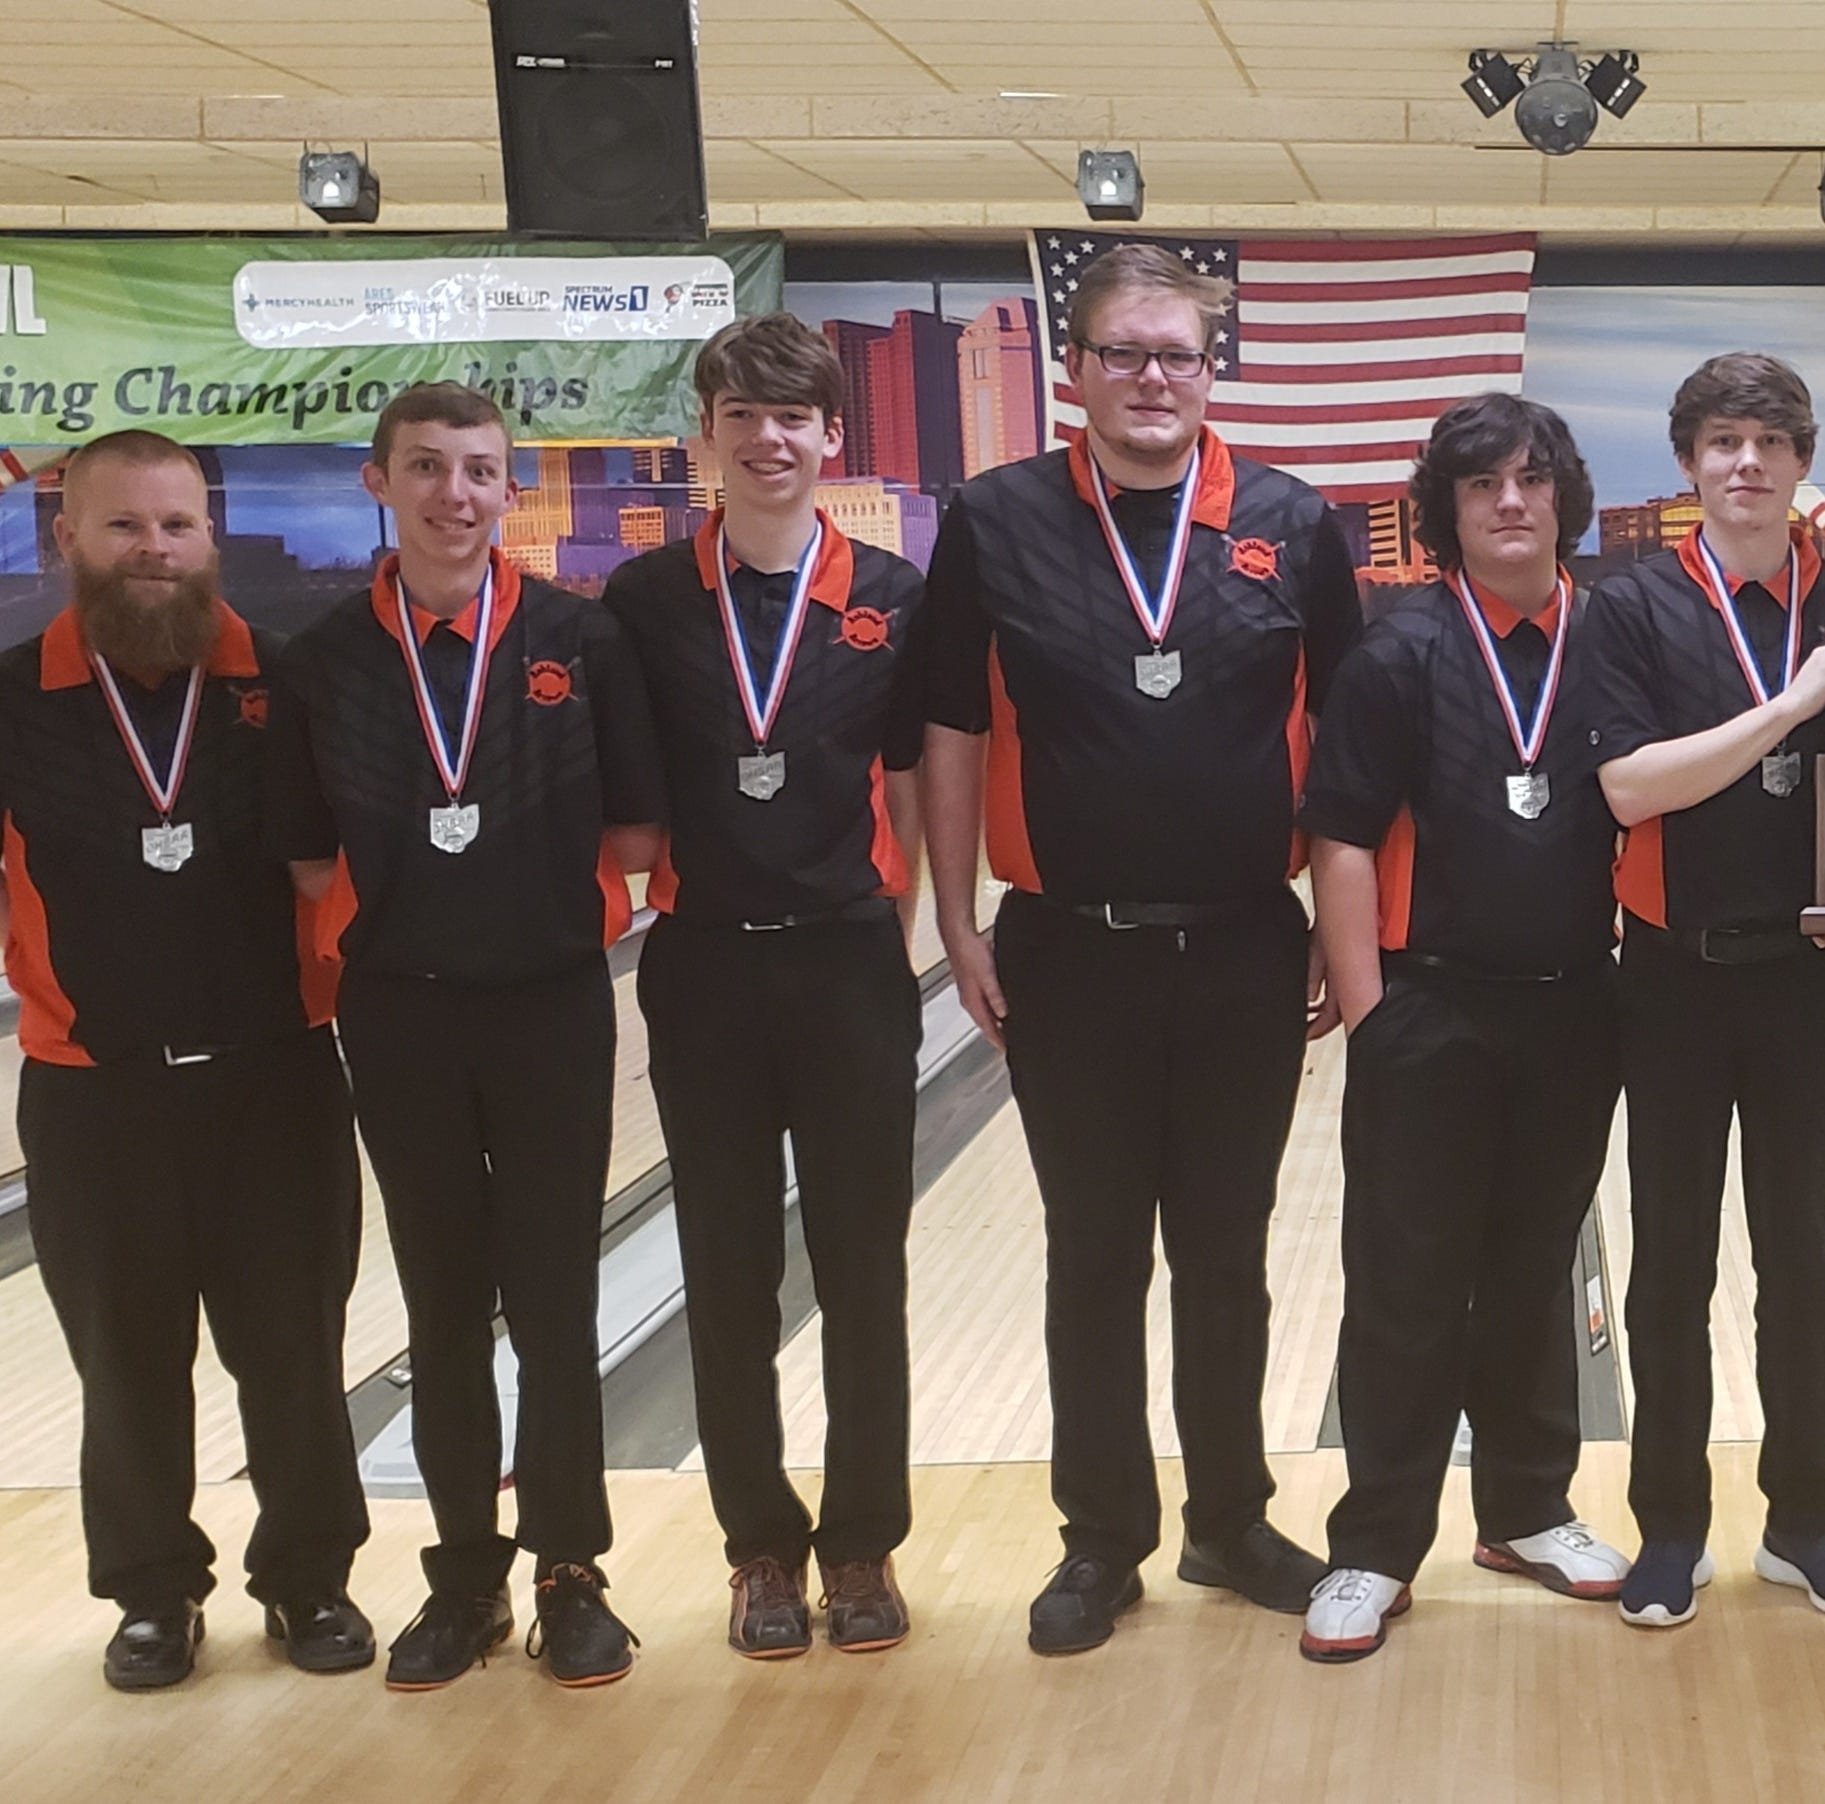 Bowling 'em over: Ashland state runner-up in just team's third year